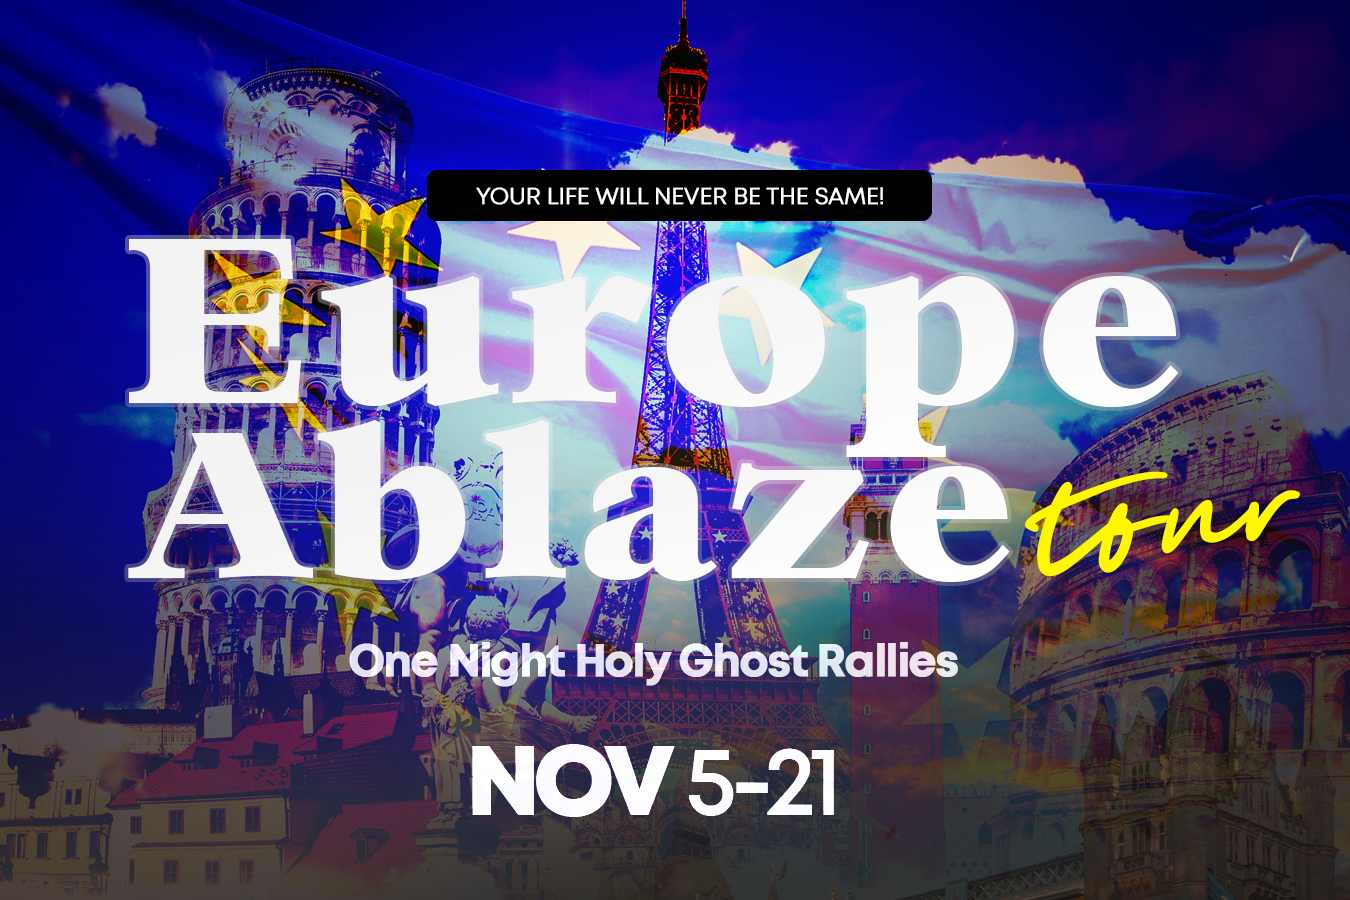 Final Report from Europe Ablaze Tour